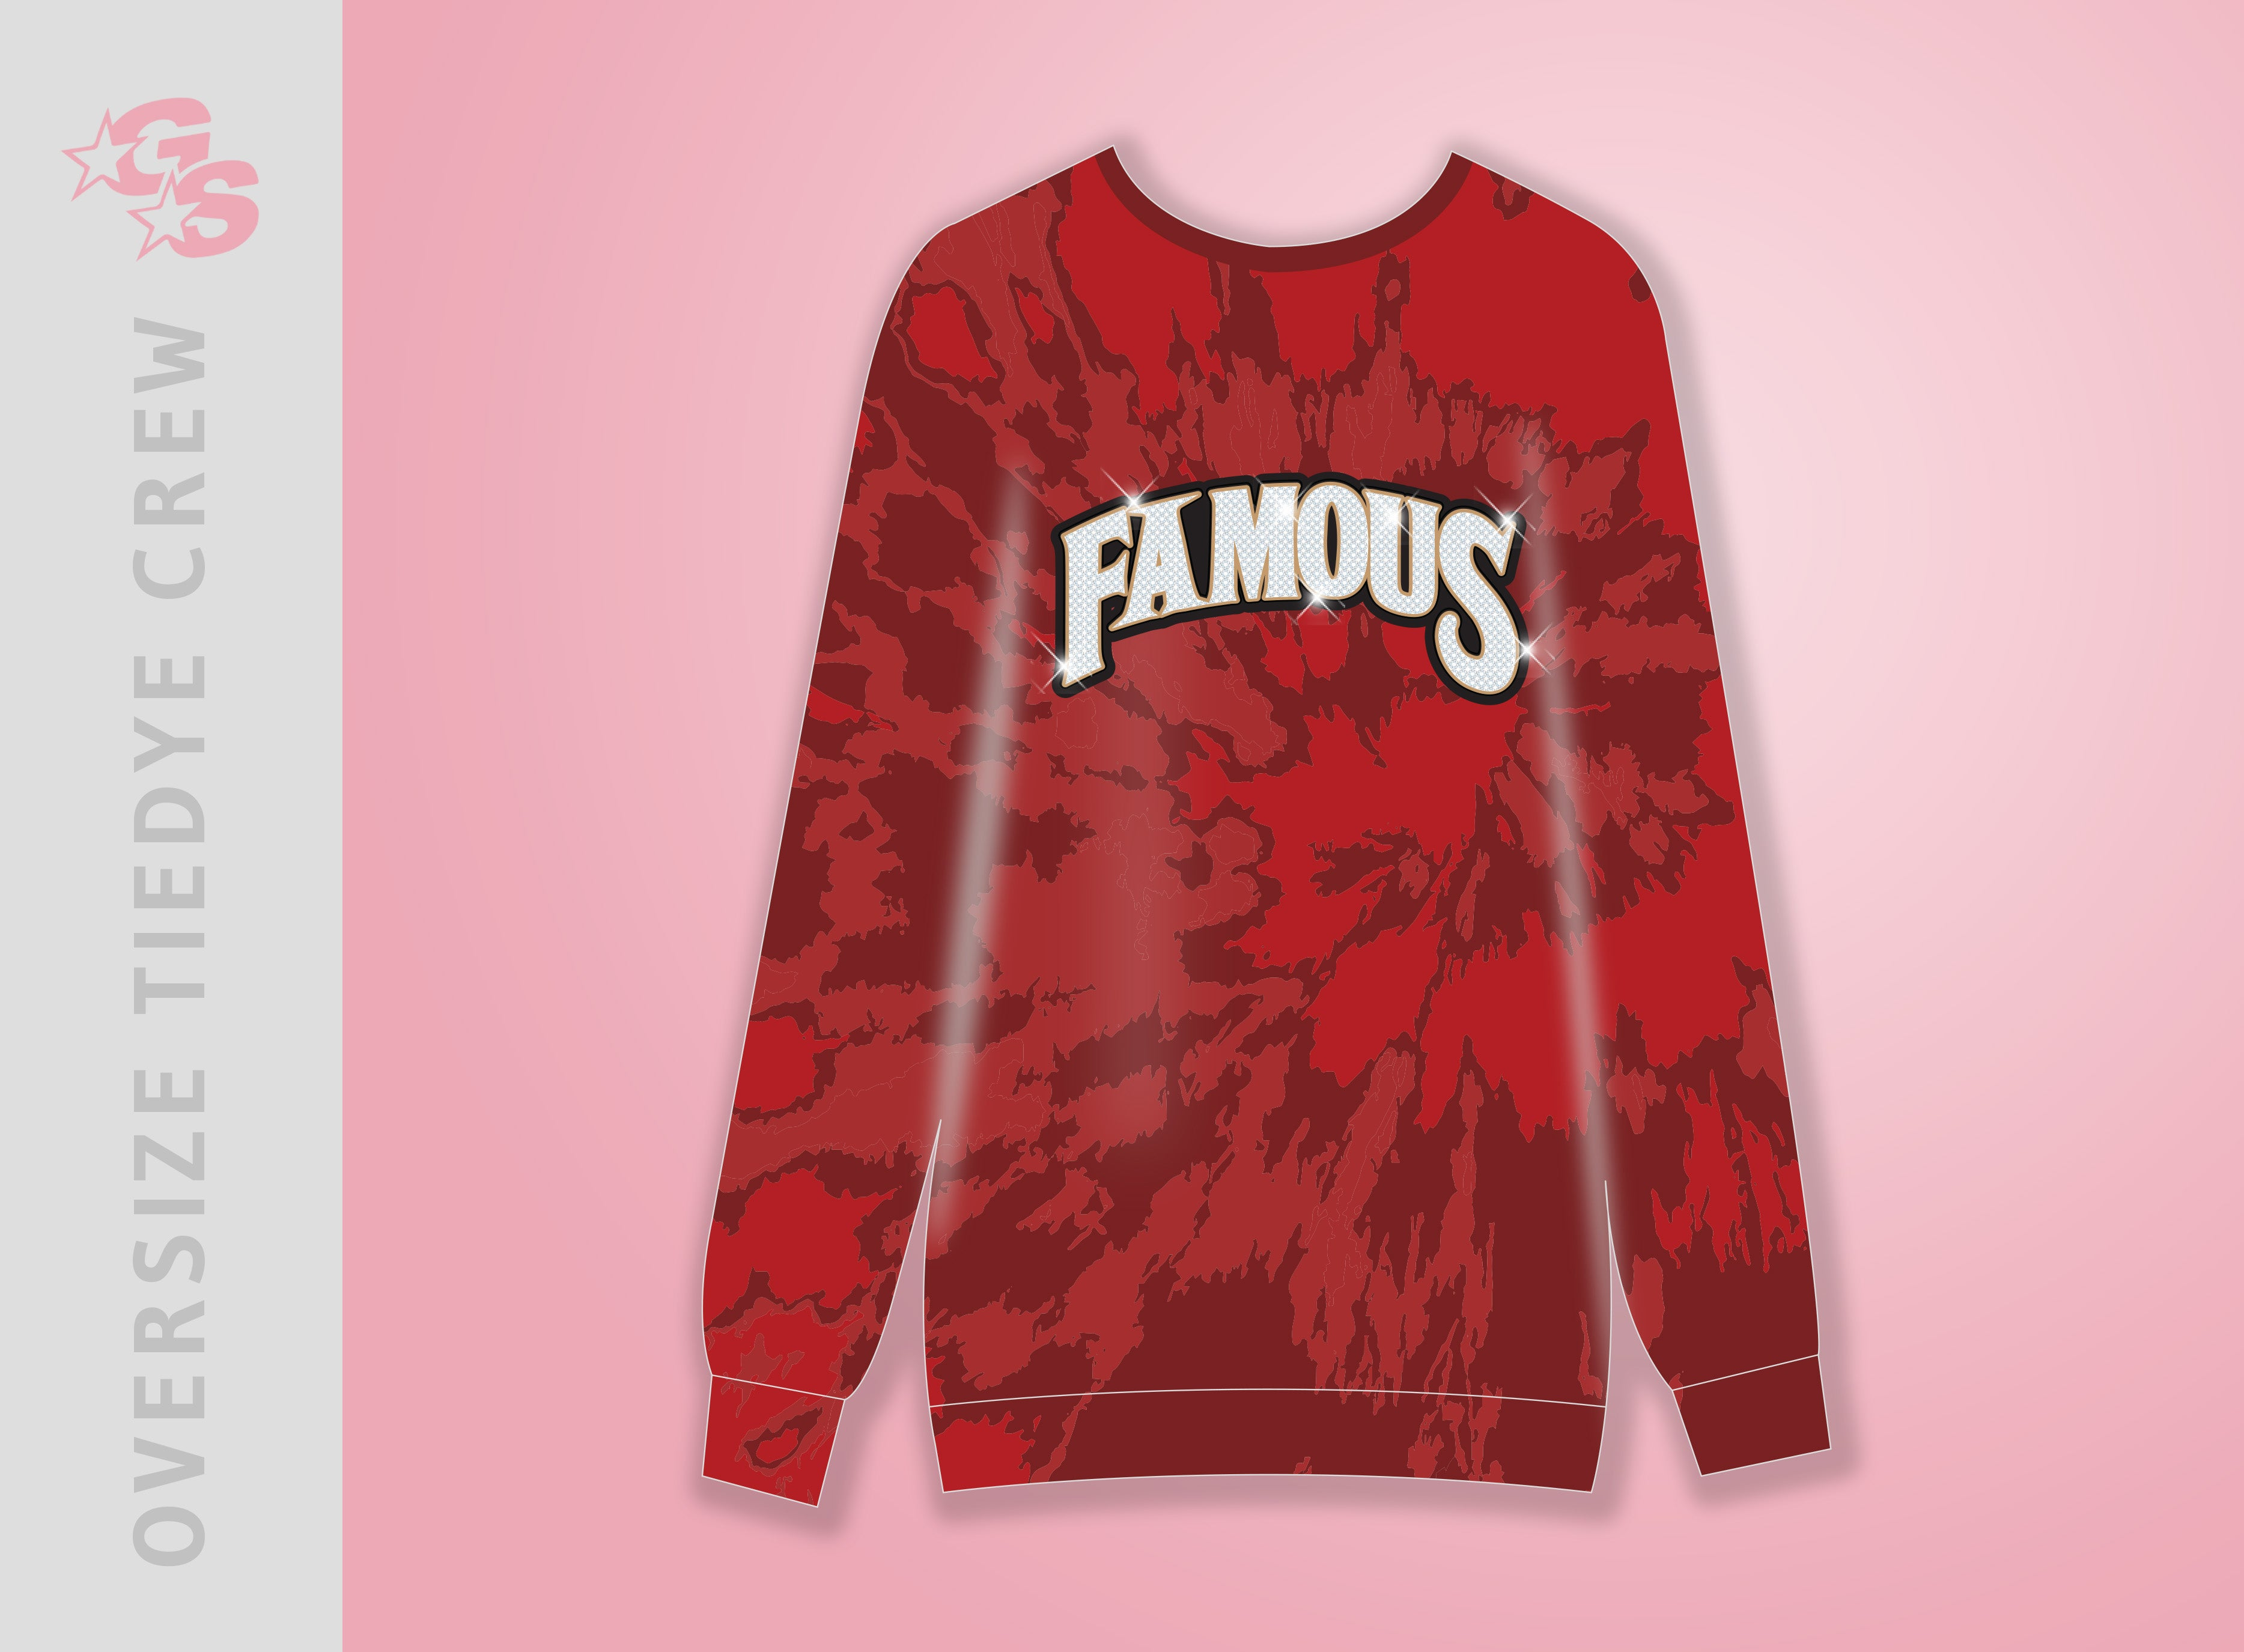 Oversized Sublimated Crewneck Tiedye sweatshirt with dyesub and bling combo logo - Famous Athletics